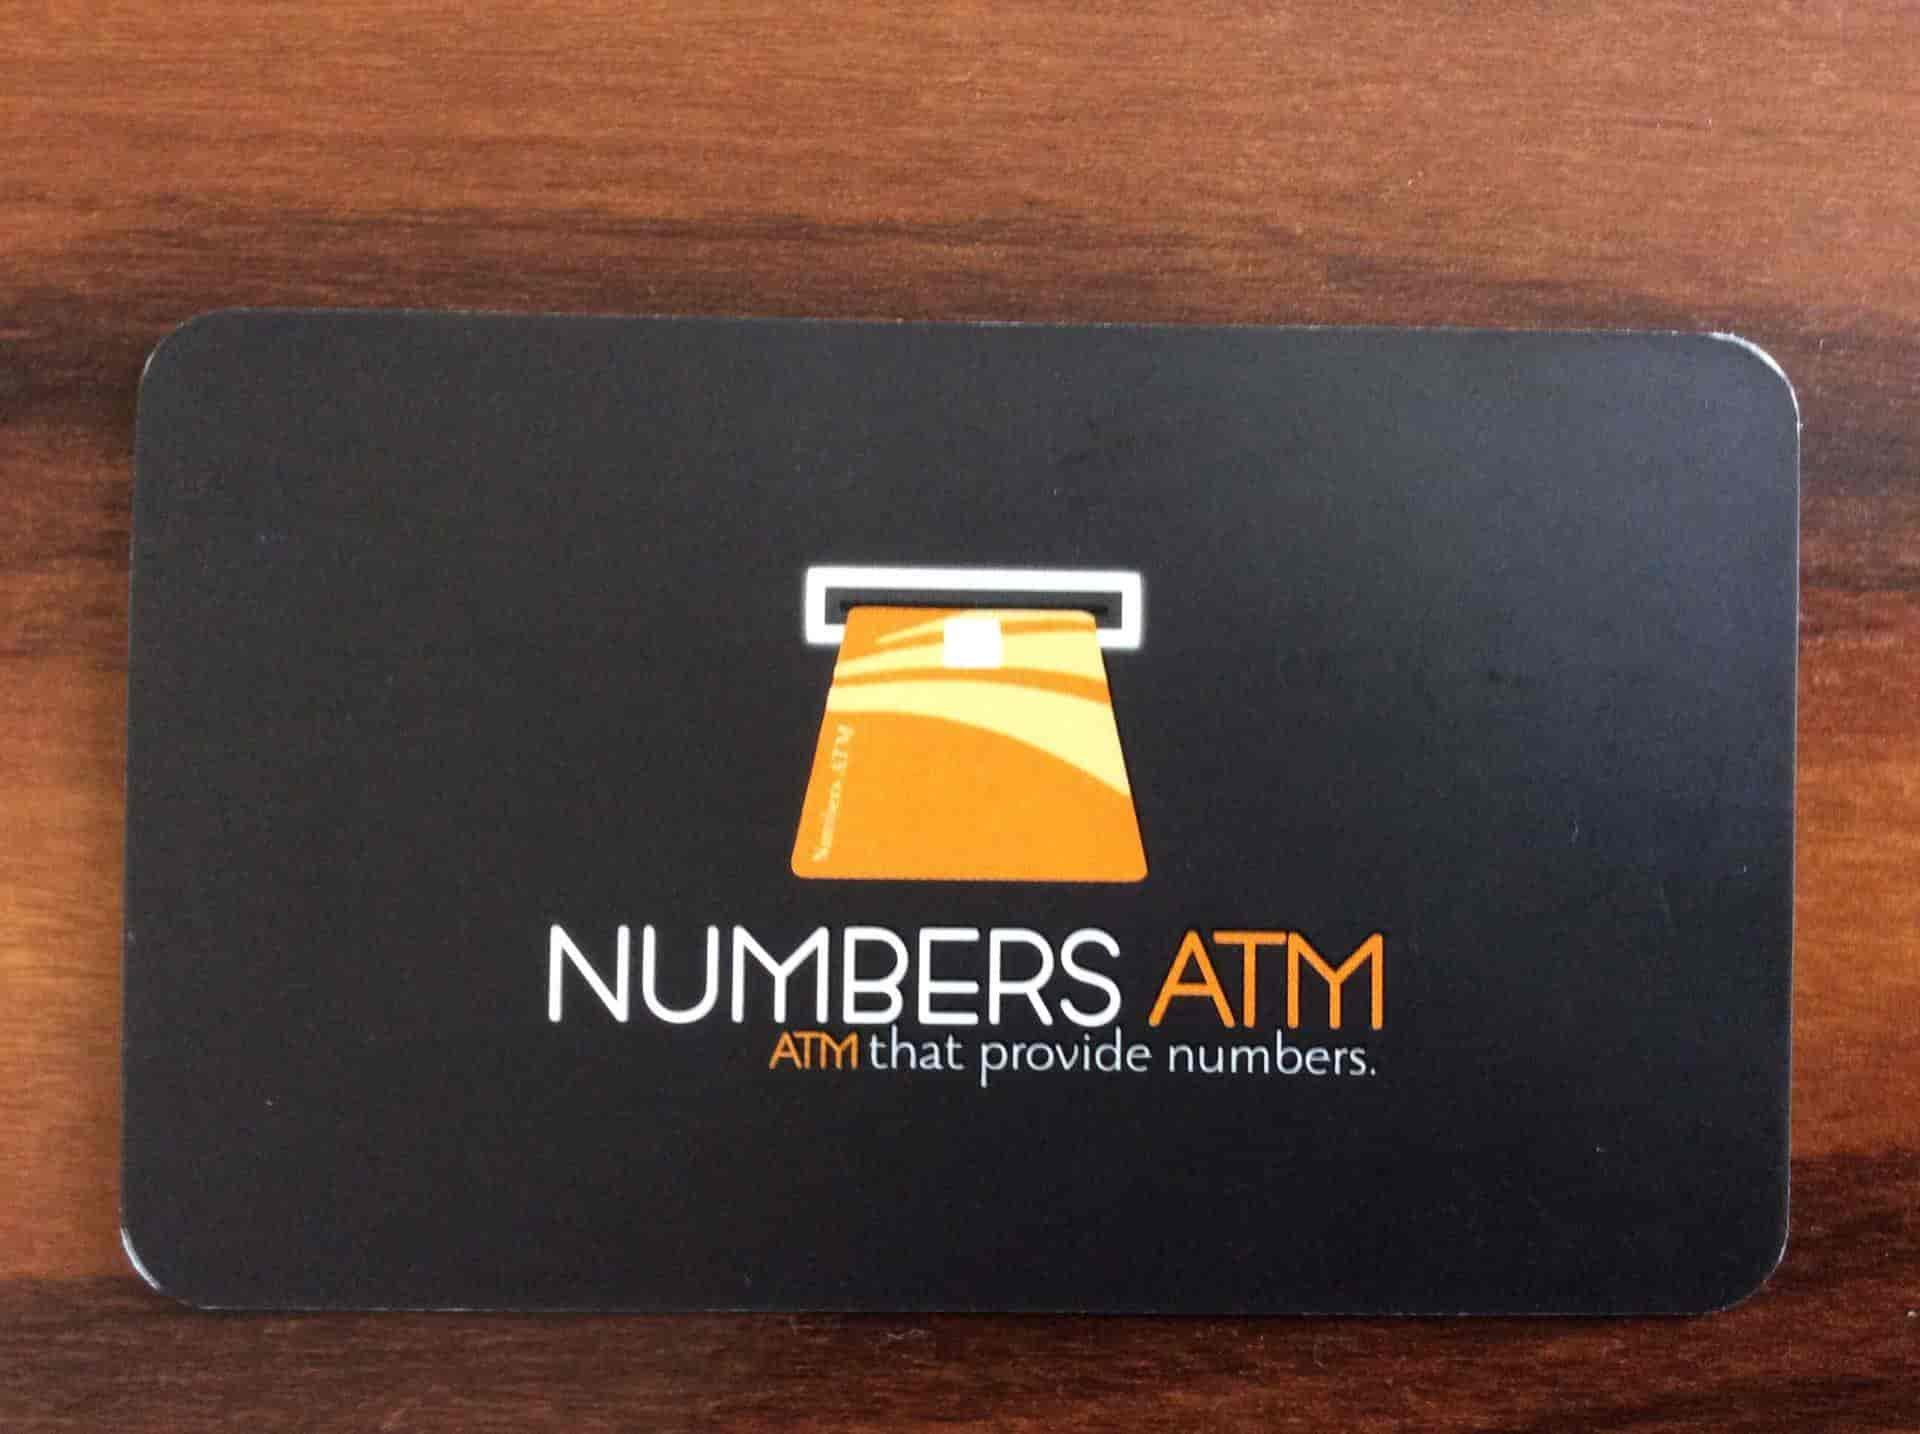 Numbers ATM Photos, Misrod, Bhopal- Pictures & Images Gallery - Justdial